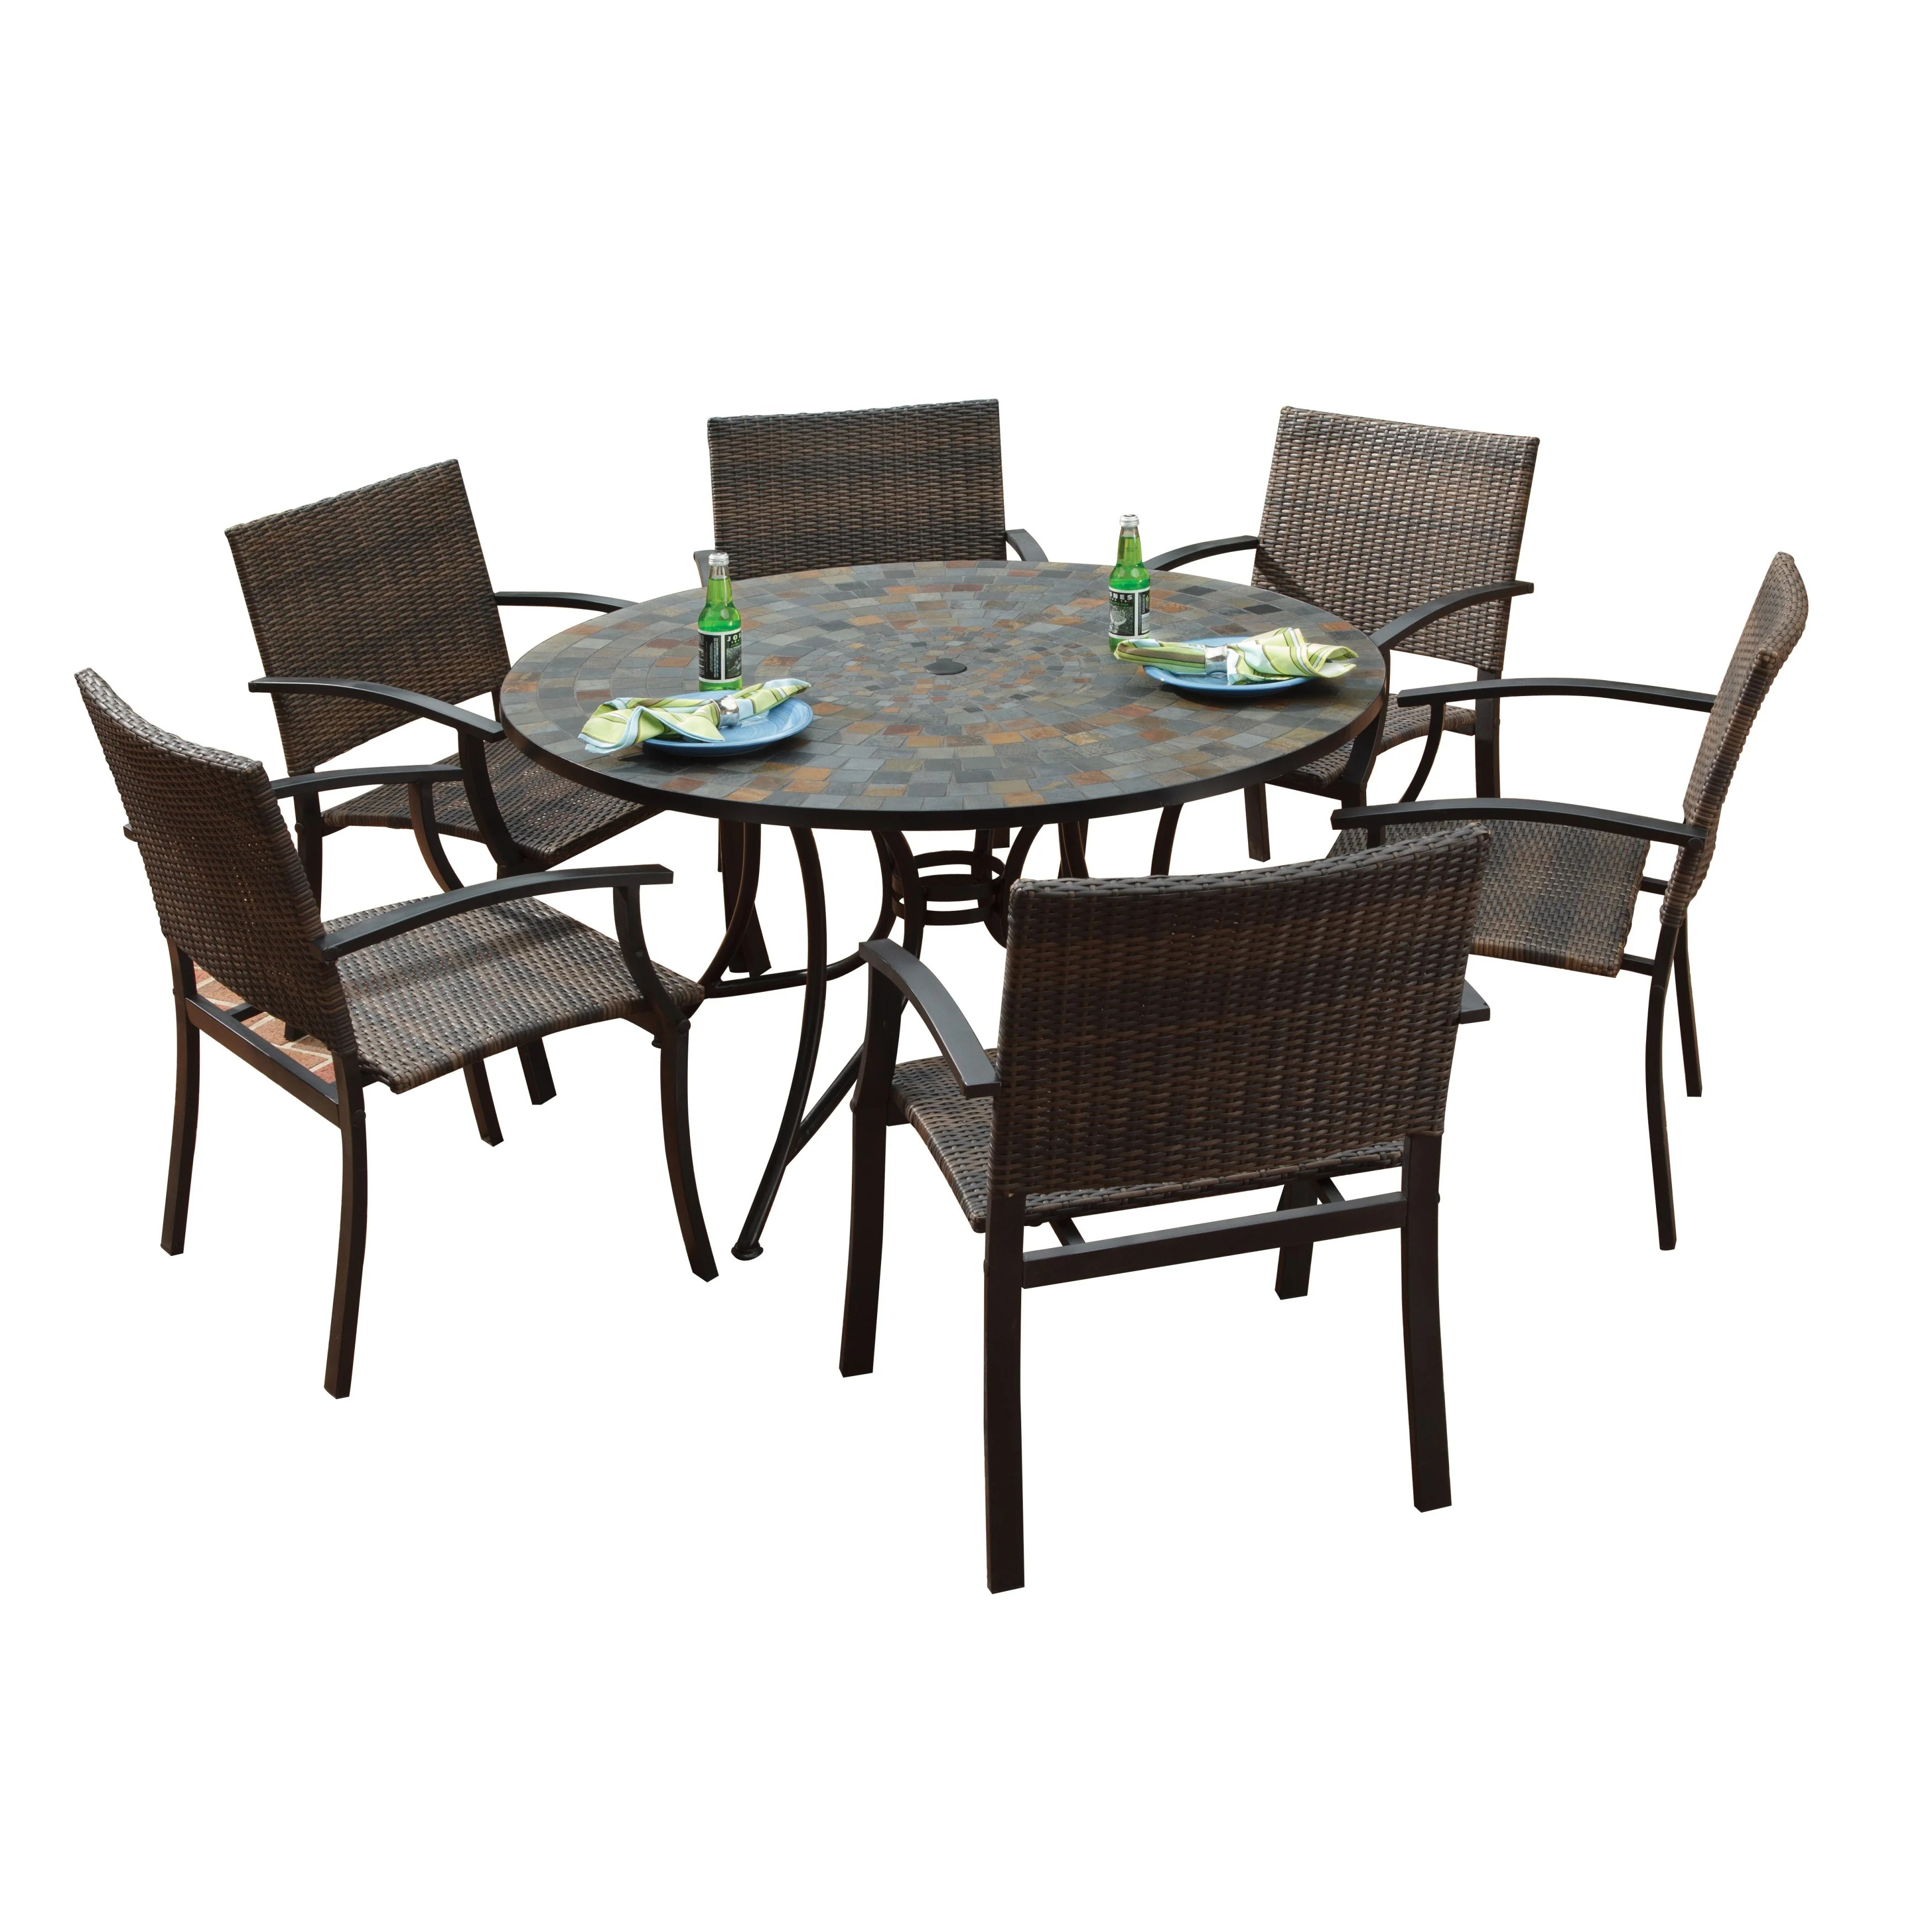 large round patio table and chairs french dining melbourne stone harbor newport arm